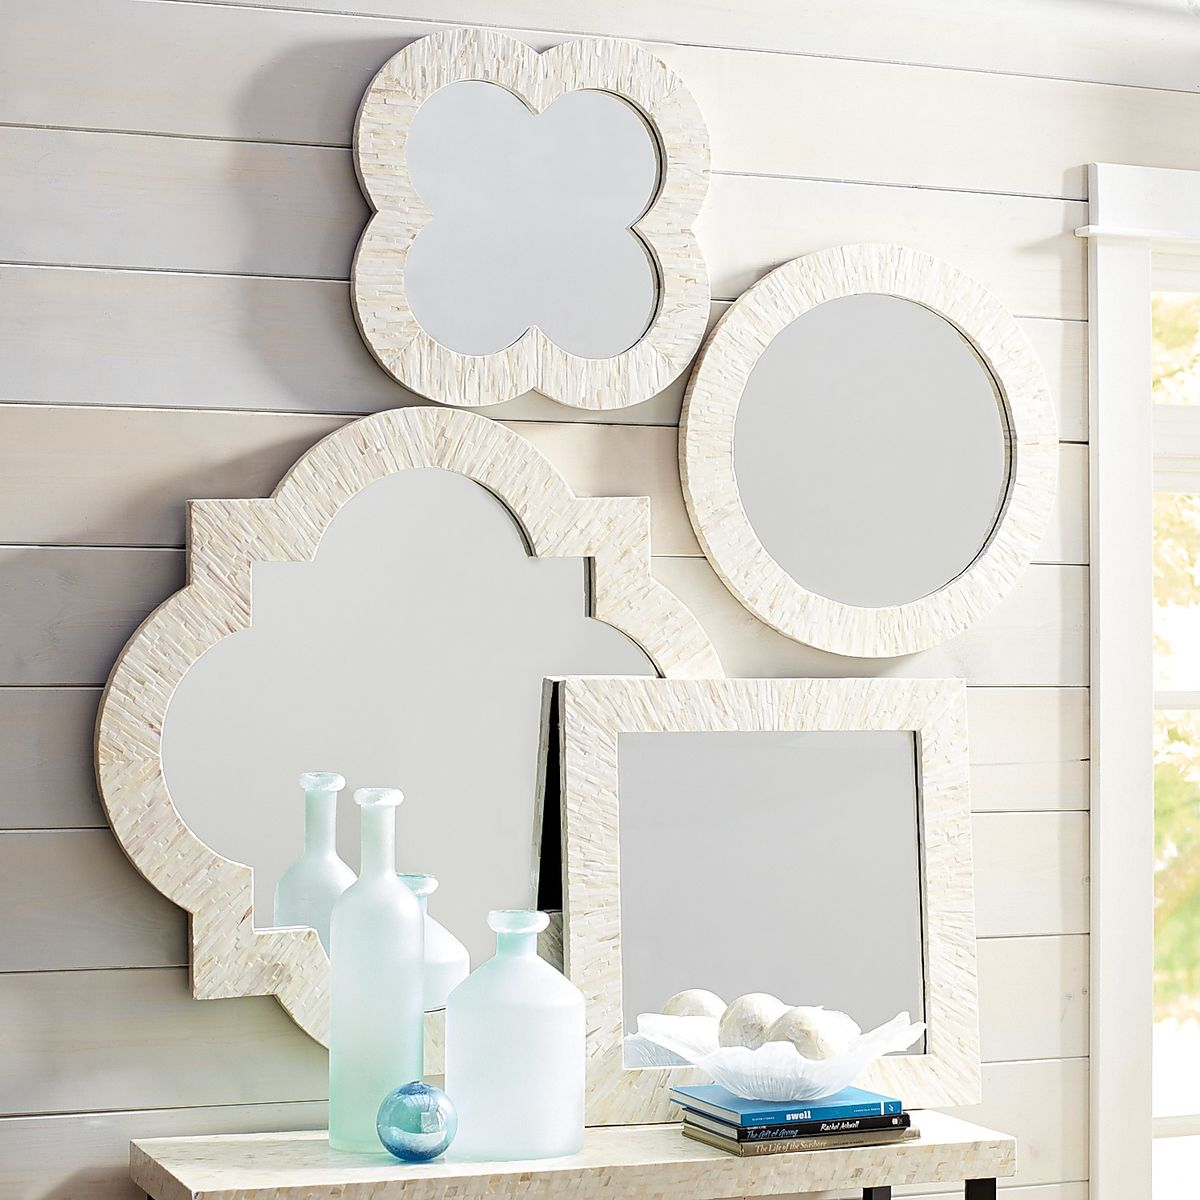 Mother of Pearl Mirror Set from Pier 1 Imports